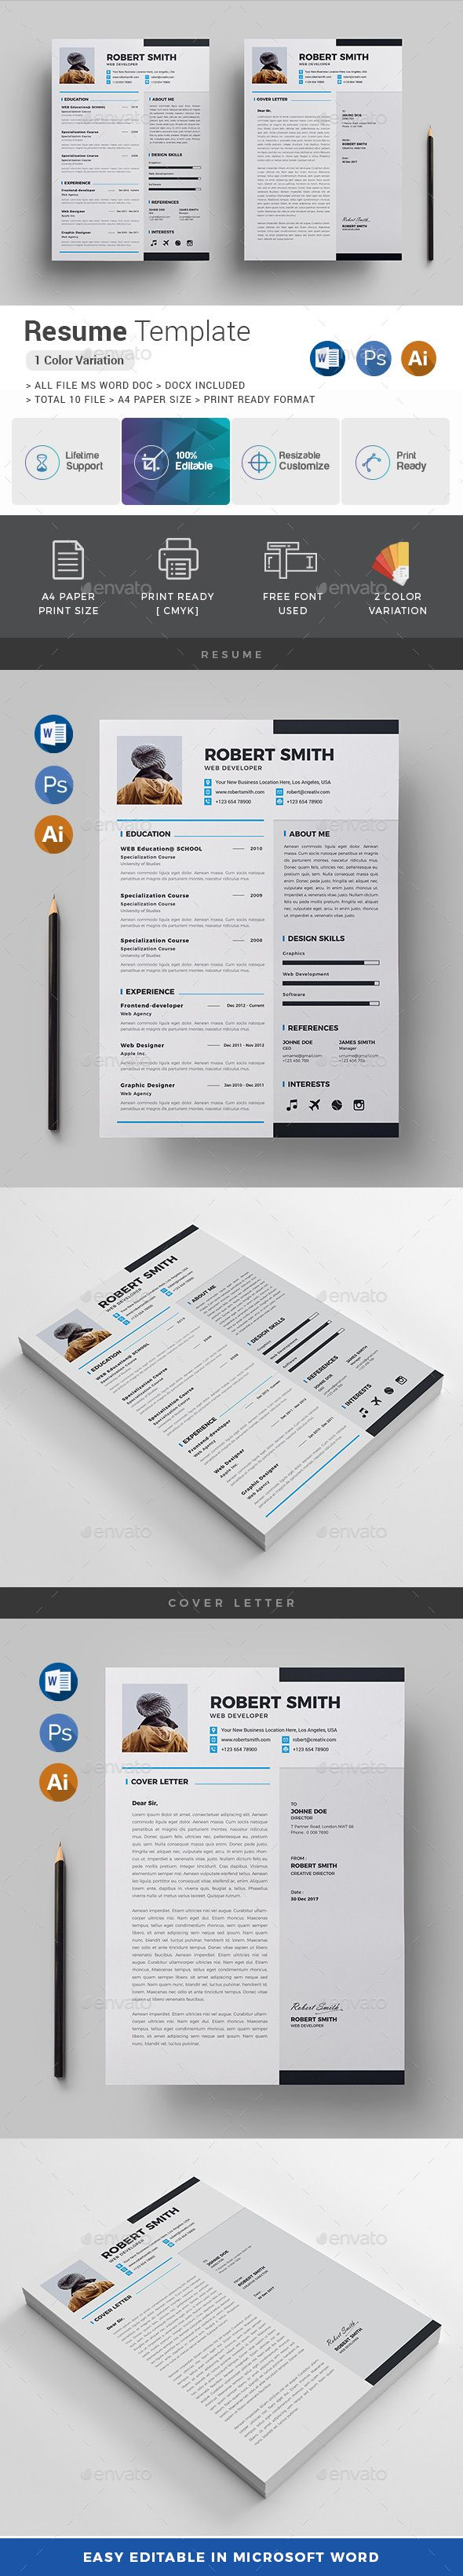 Simple Resume Exampleprin Resume  A4 Paper Paper Size And Adobe Photoshop